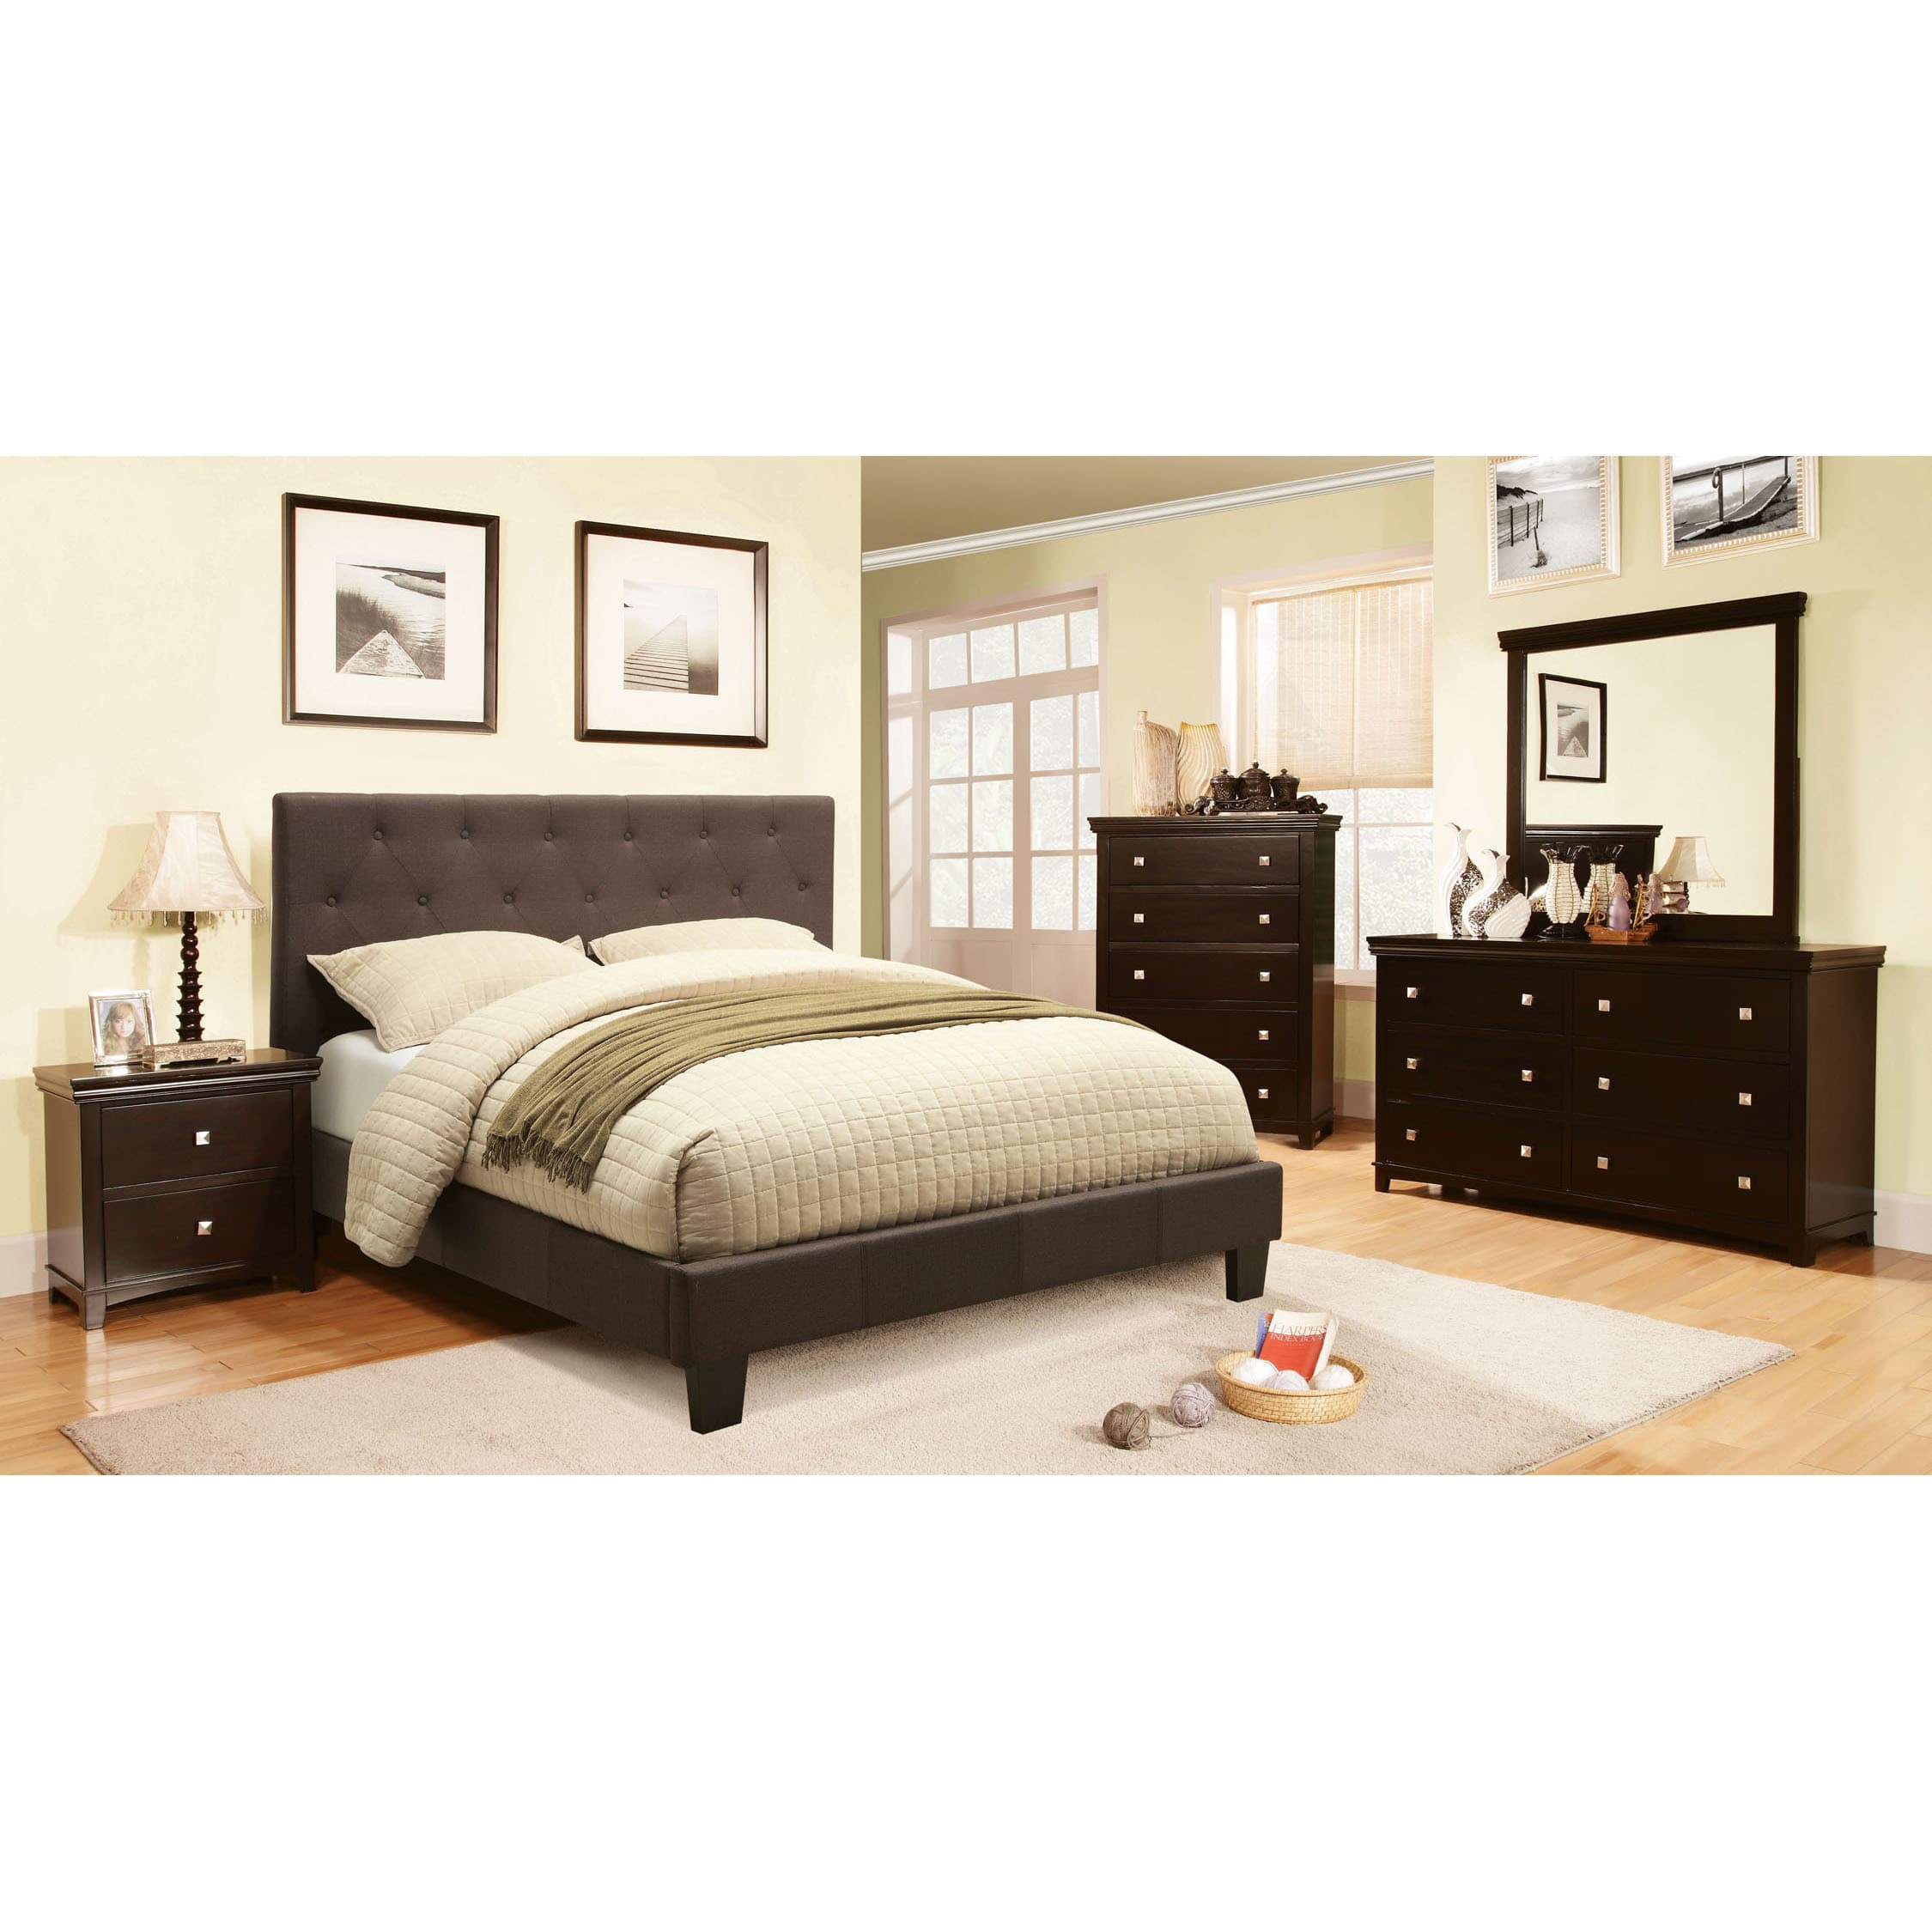 Charming Furniture Of America Perdella 4 Piece Grey Low Profile Bedroom Set